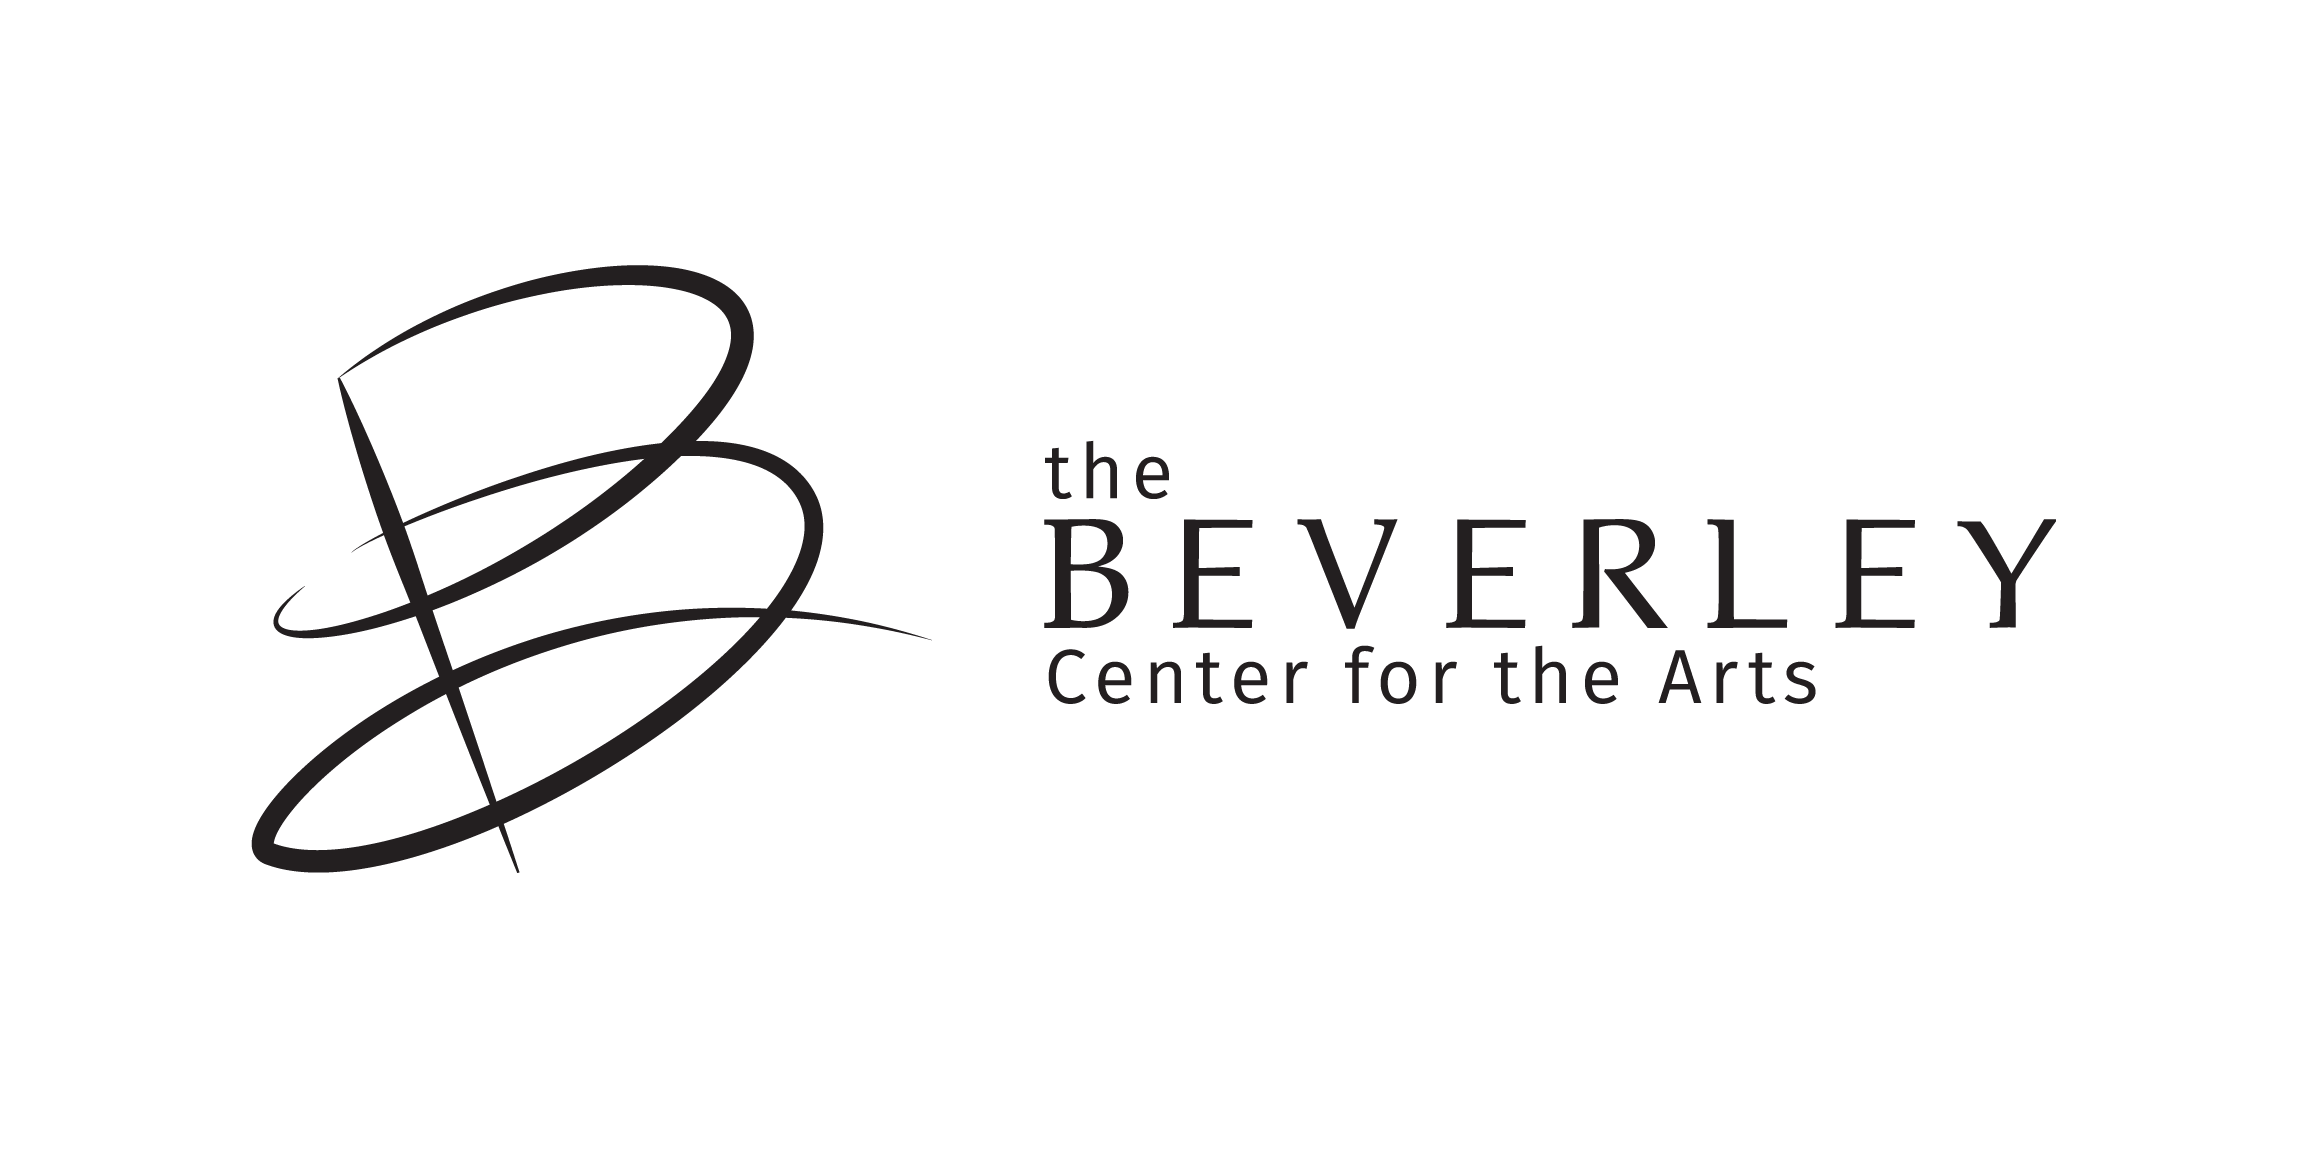 the beverly logo black@3x.png